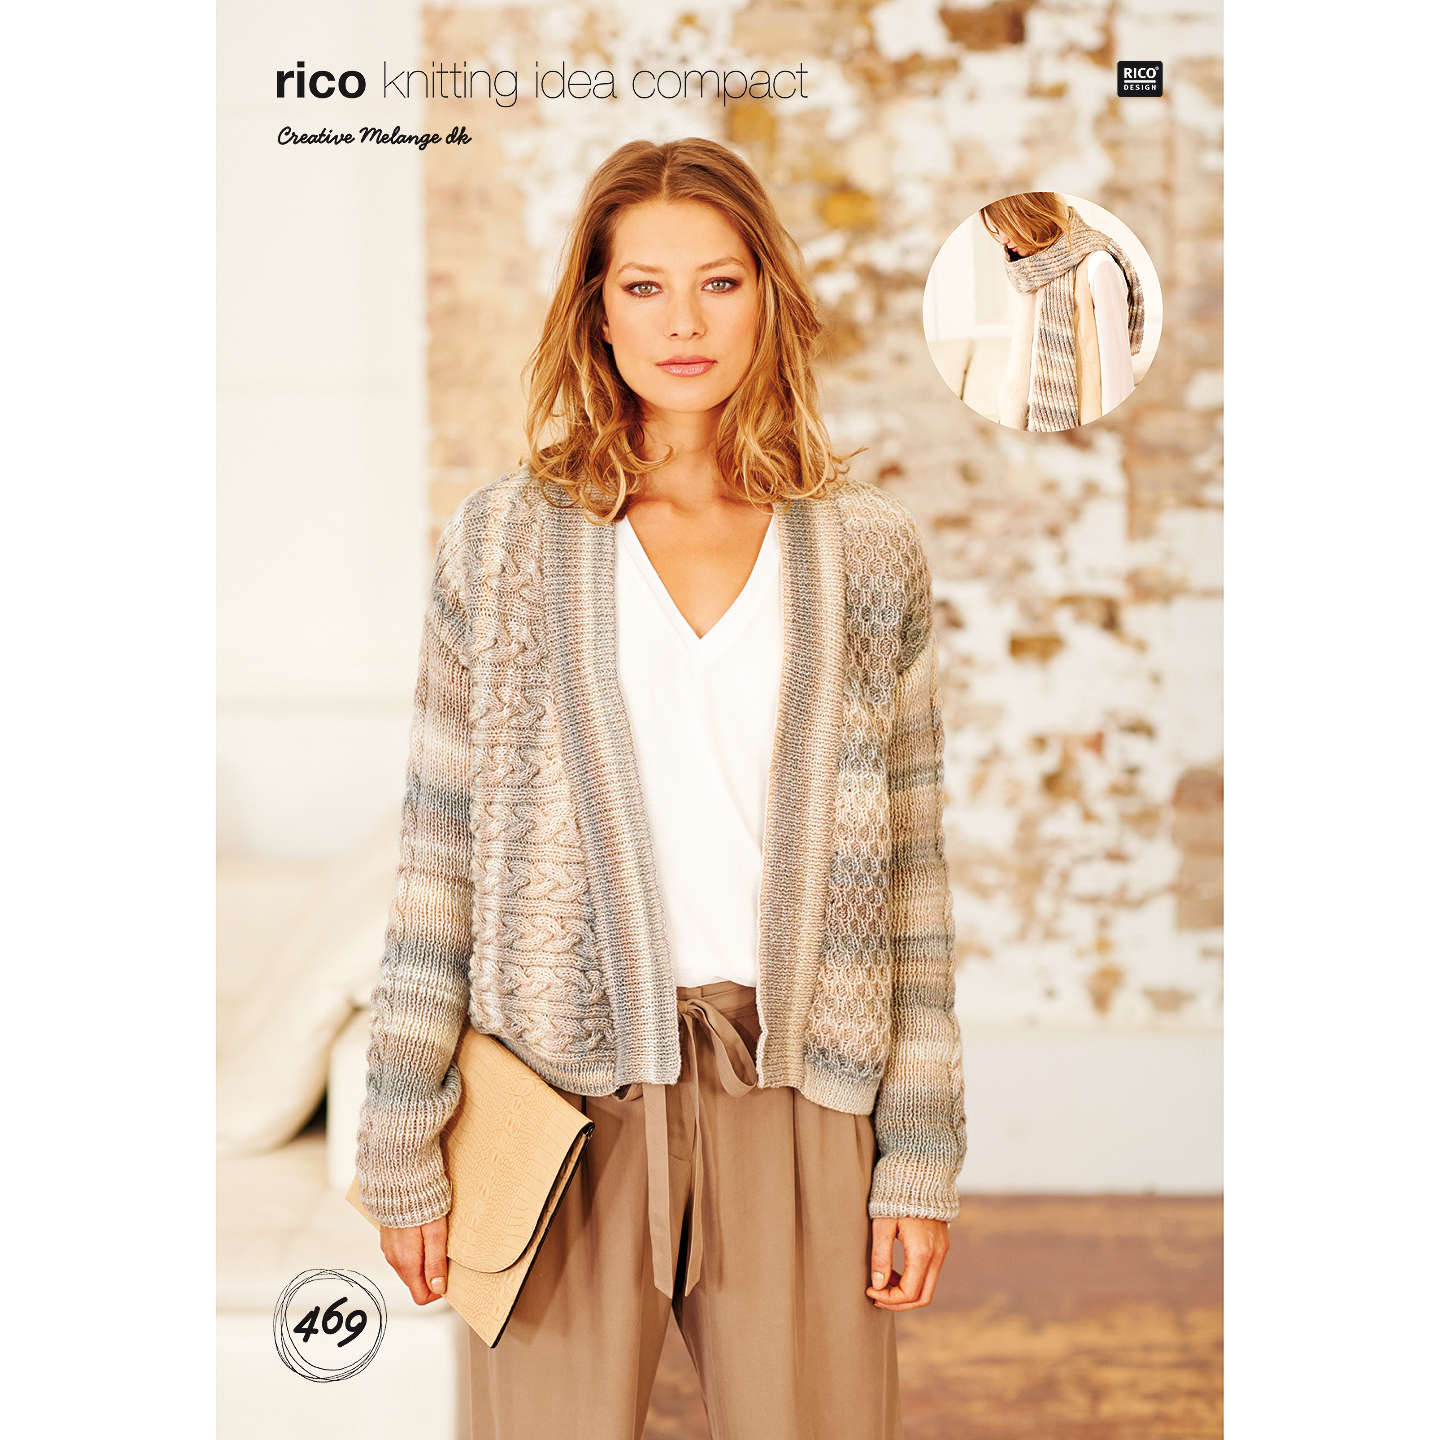 Rico Creative Melange DK Women\'s Cardigan Knitting Pattern, 469 at ...